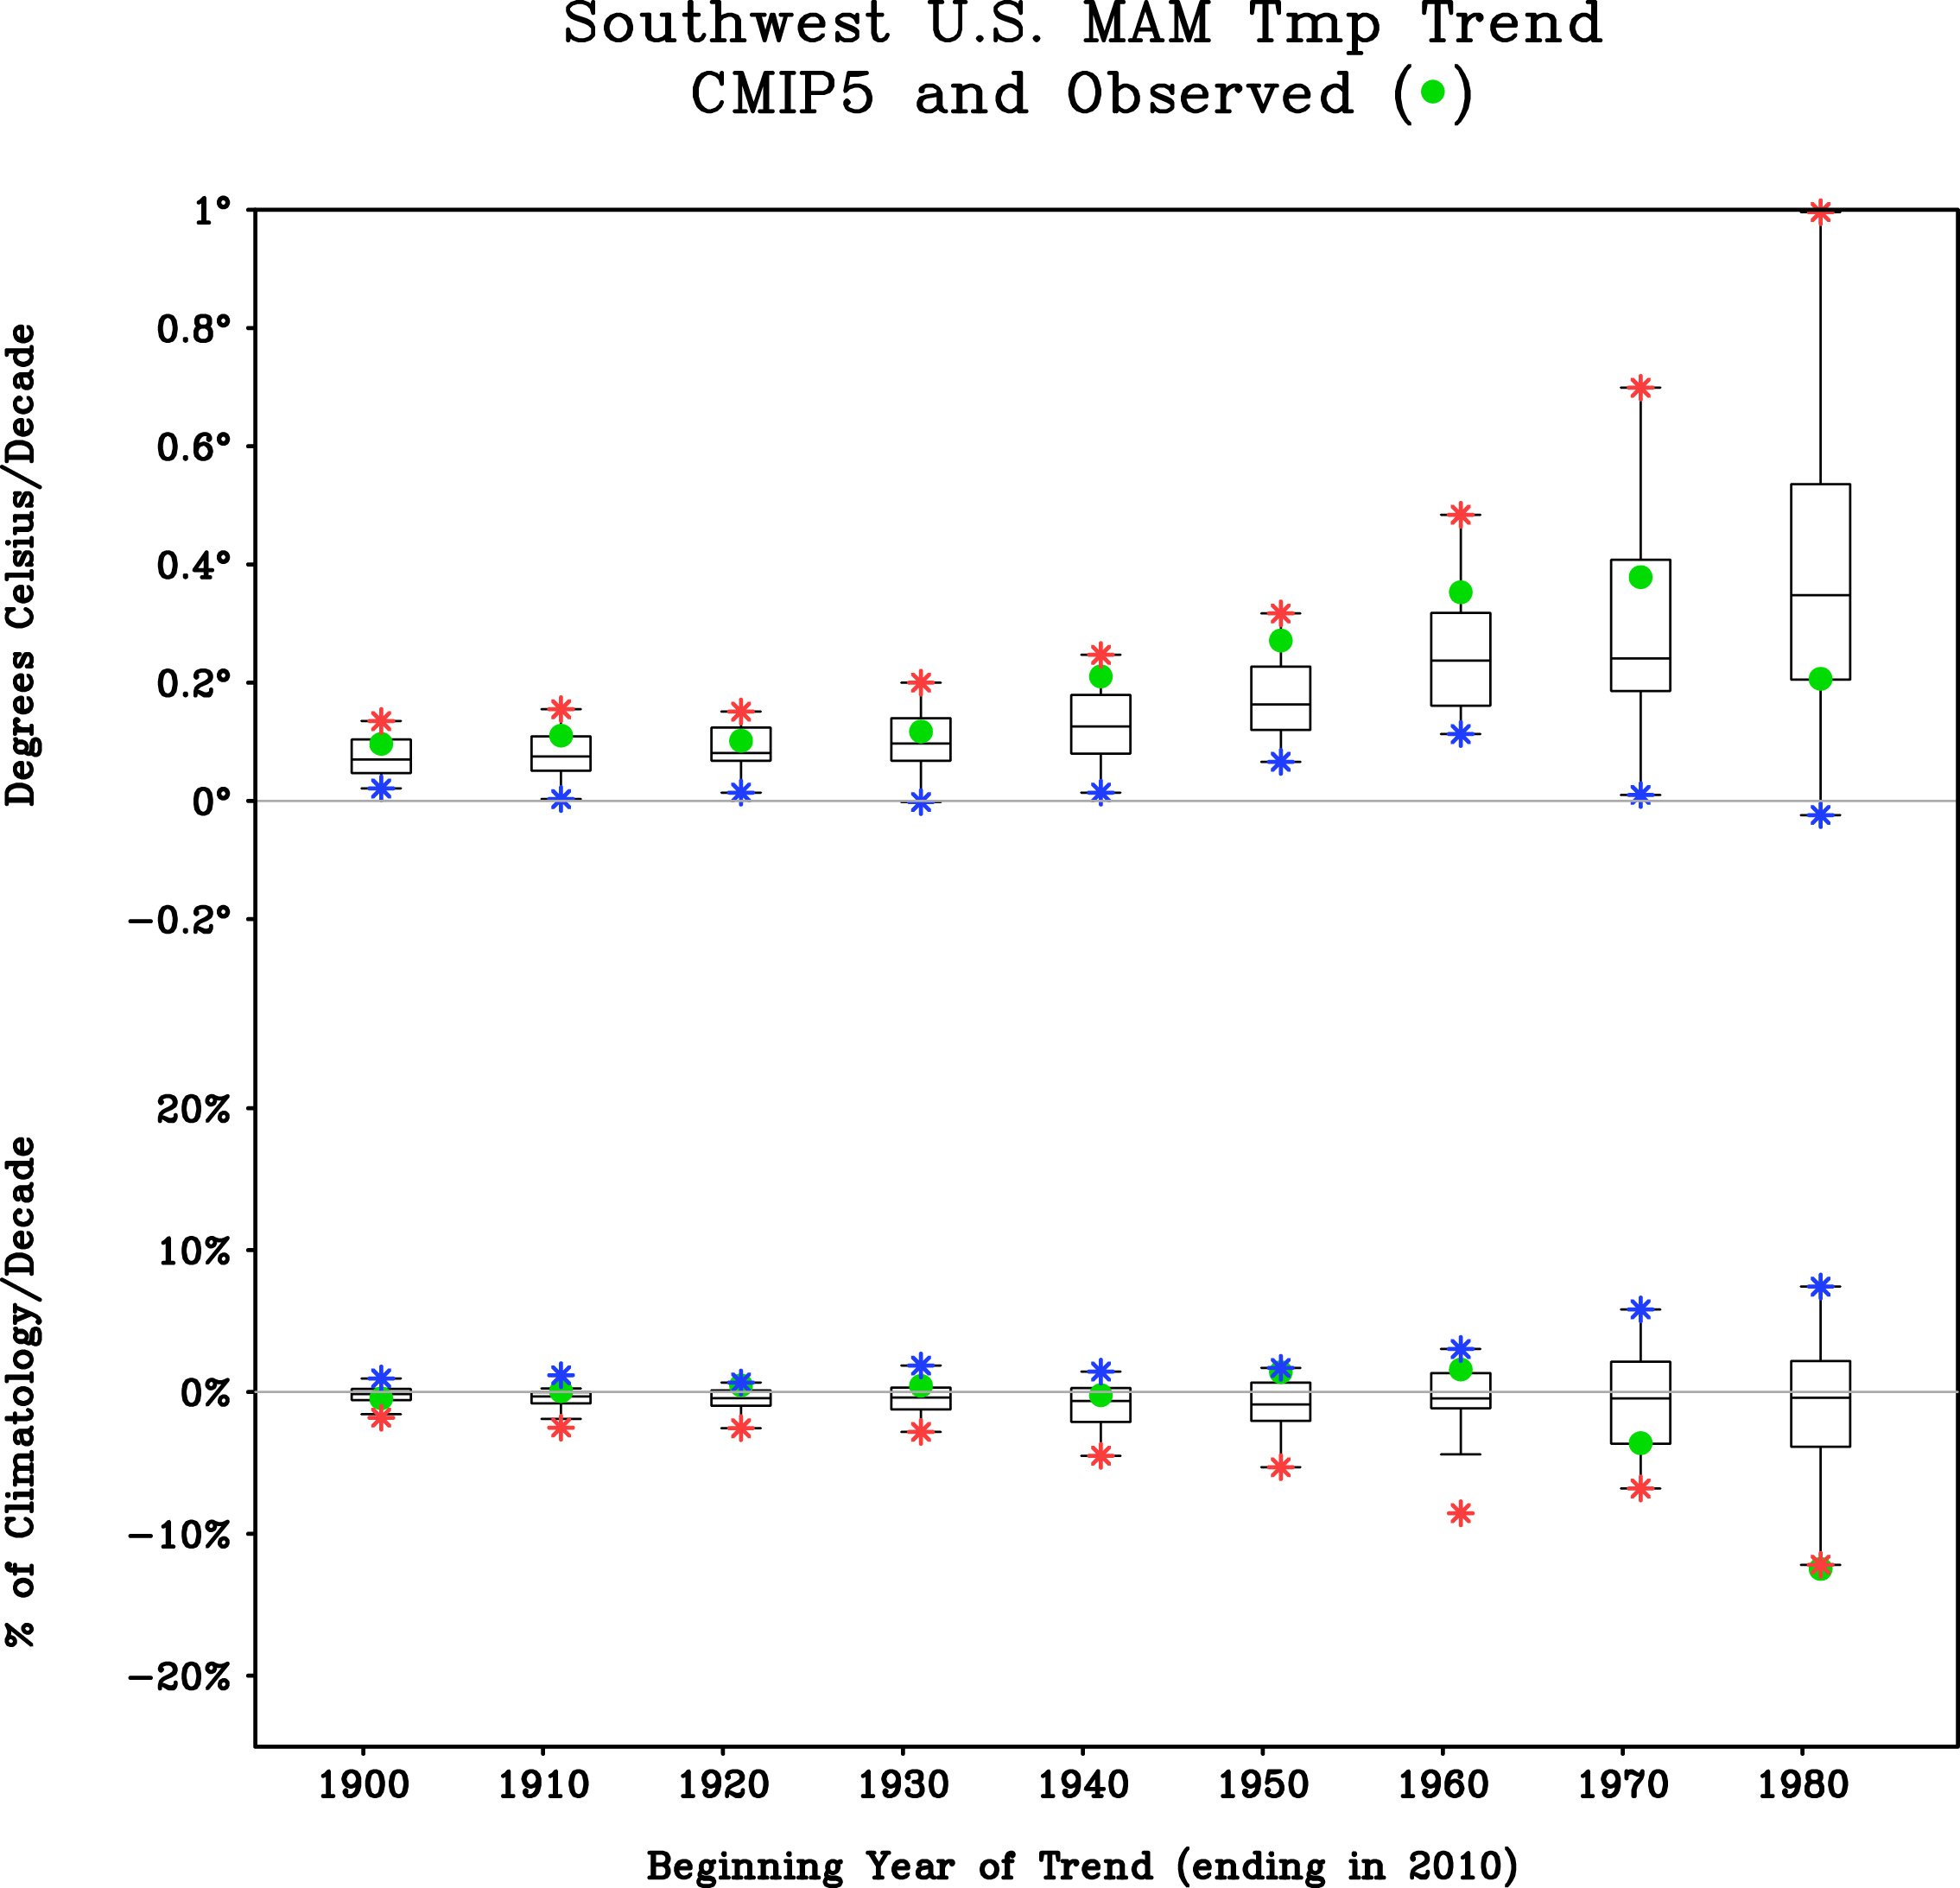 Southwest U.S. CMIP5 vs. Observed